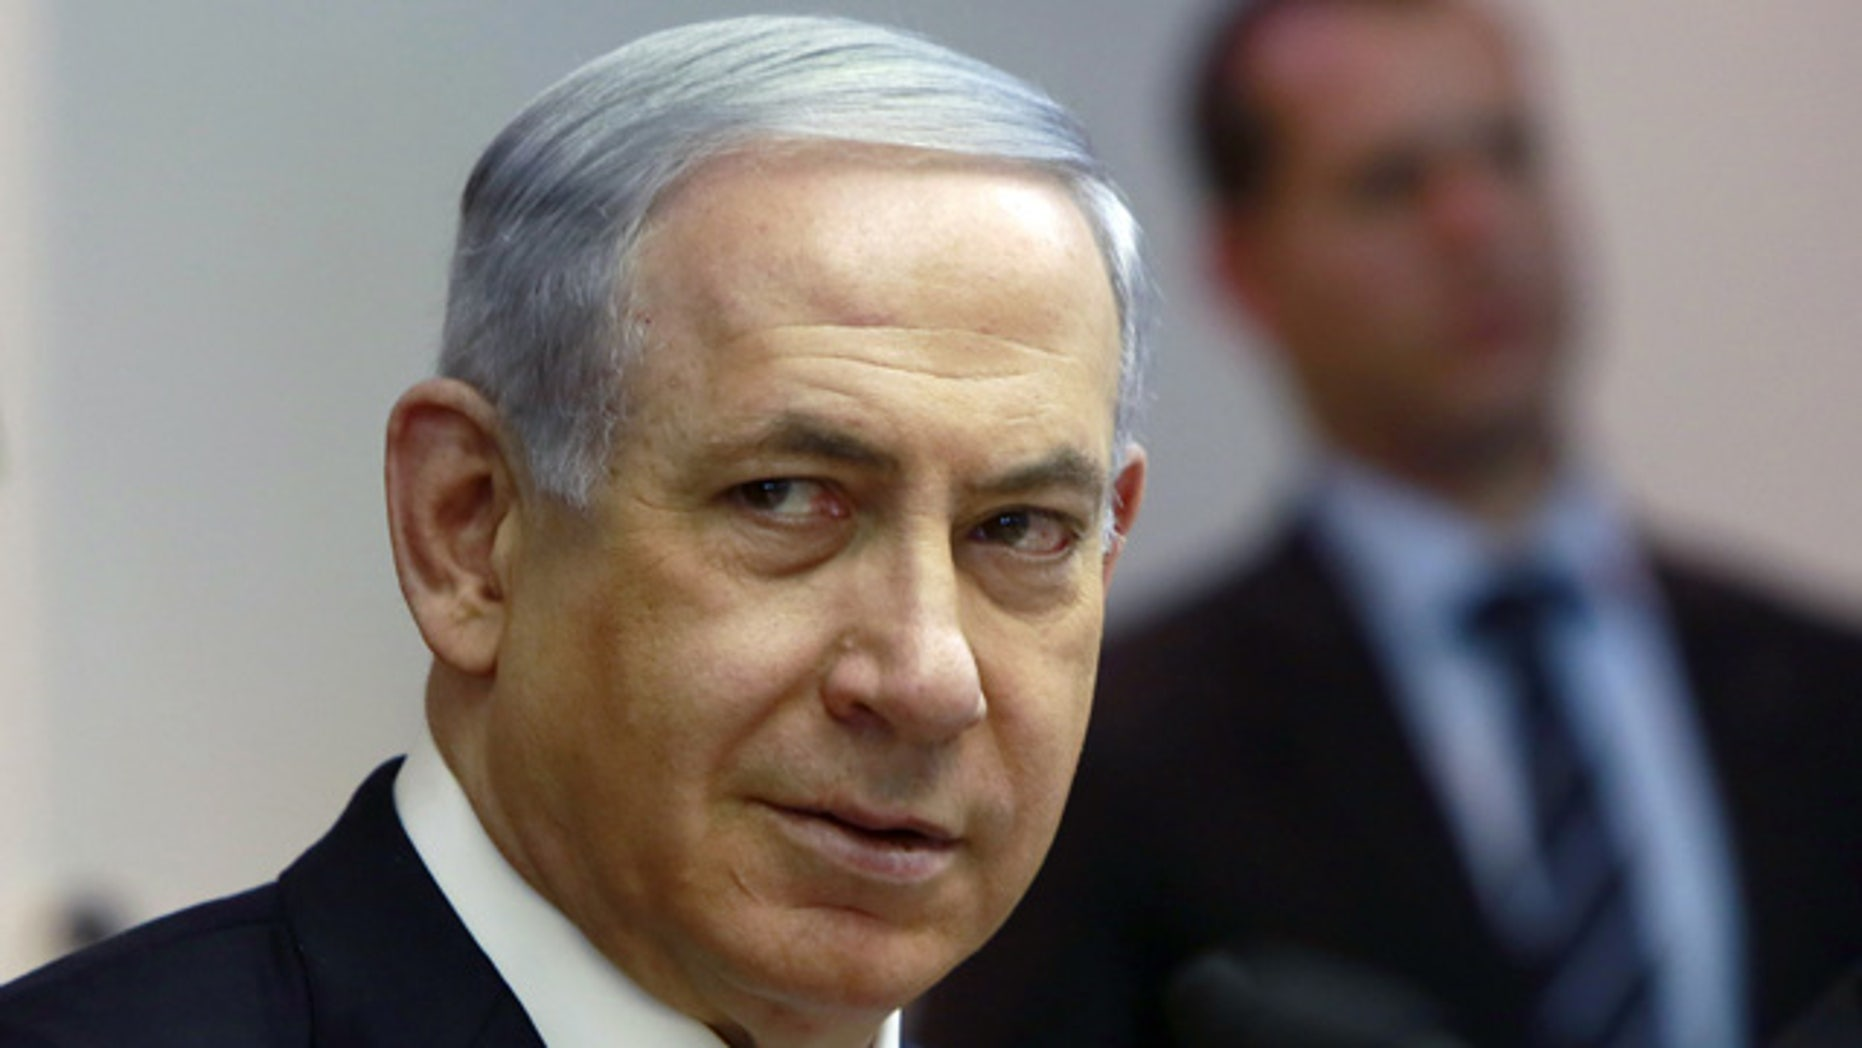 March 8, 2015: Israeli Prime Minister Benjamin Netanyahu chairs the weekly cabinet meeting at his Jerusalem office, Sunday. (AP Photo/Gali Tibbon, Pool)